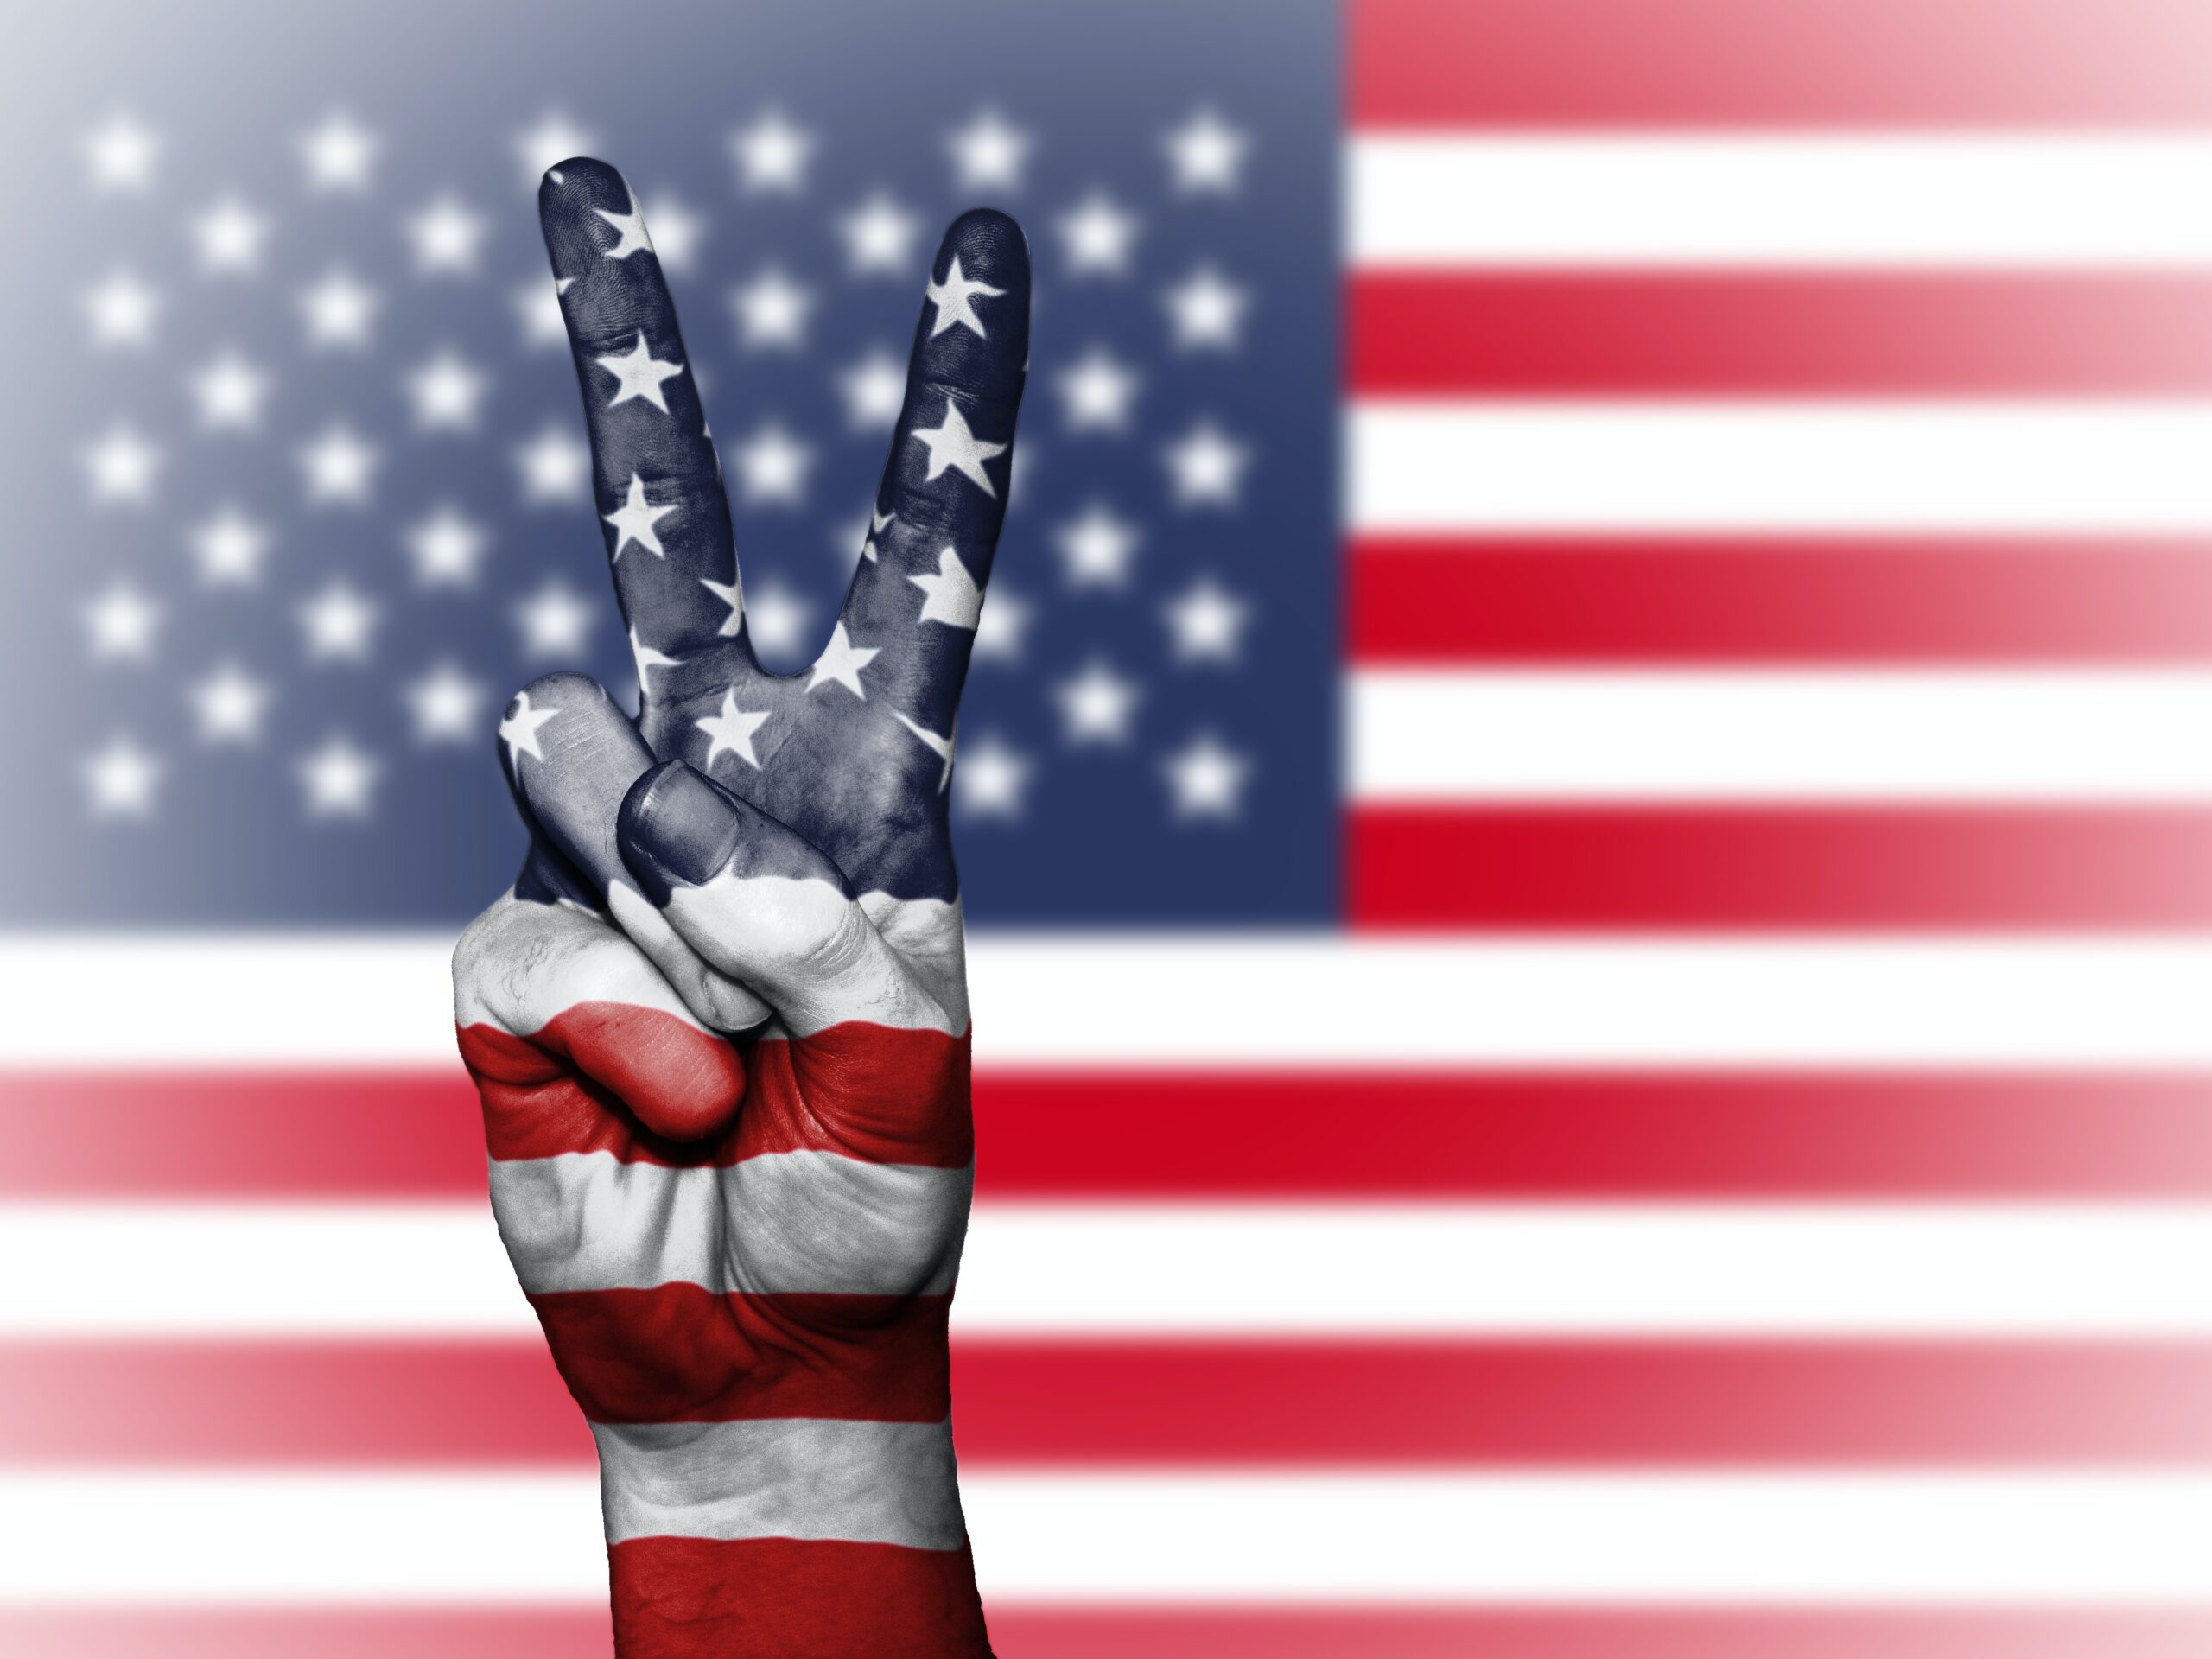 a person making the peace sign in front of an American flag